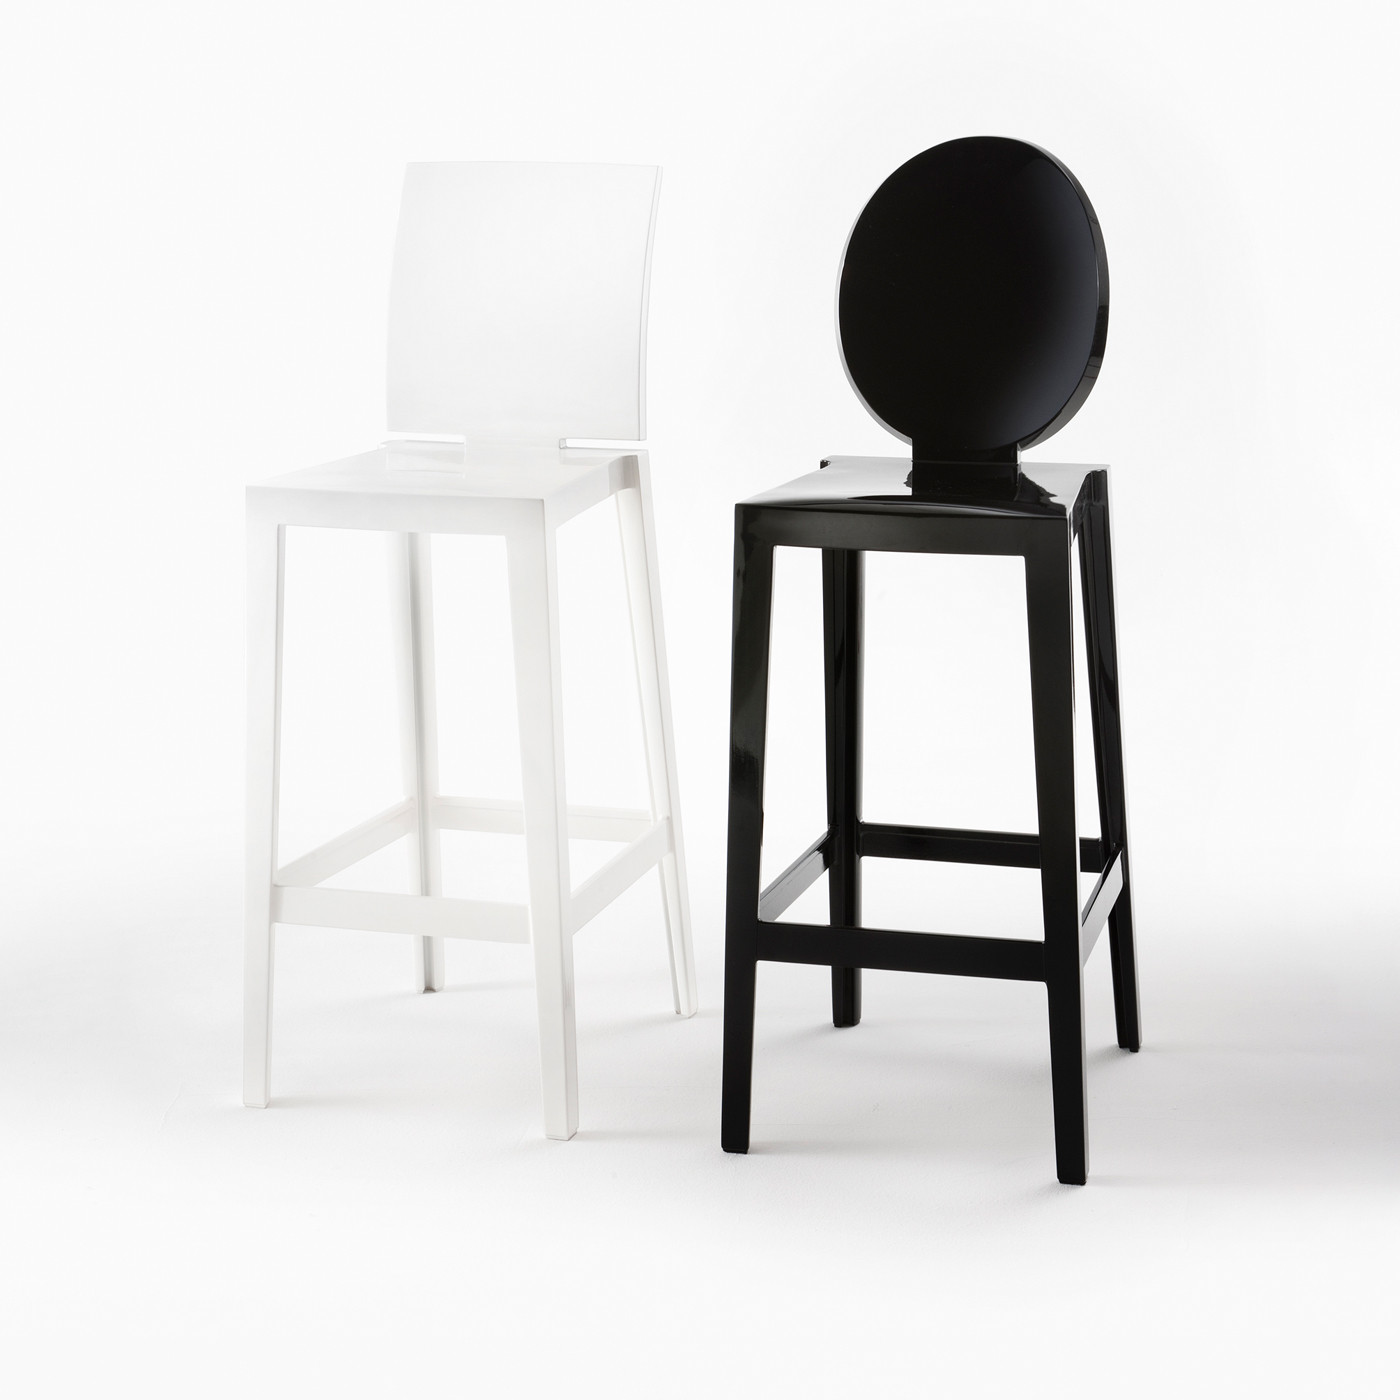 de tabouret bar65 Please hauteur d'assise MoreOne Kartell Ghost cm One More IDYW29EH